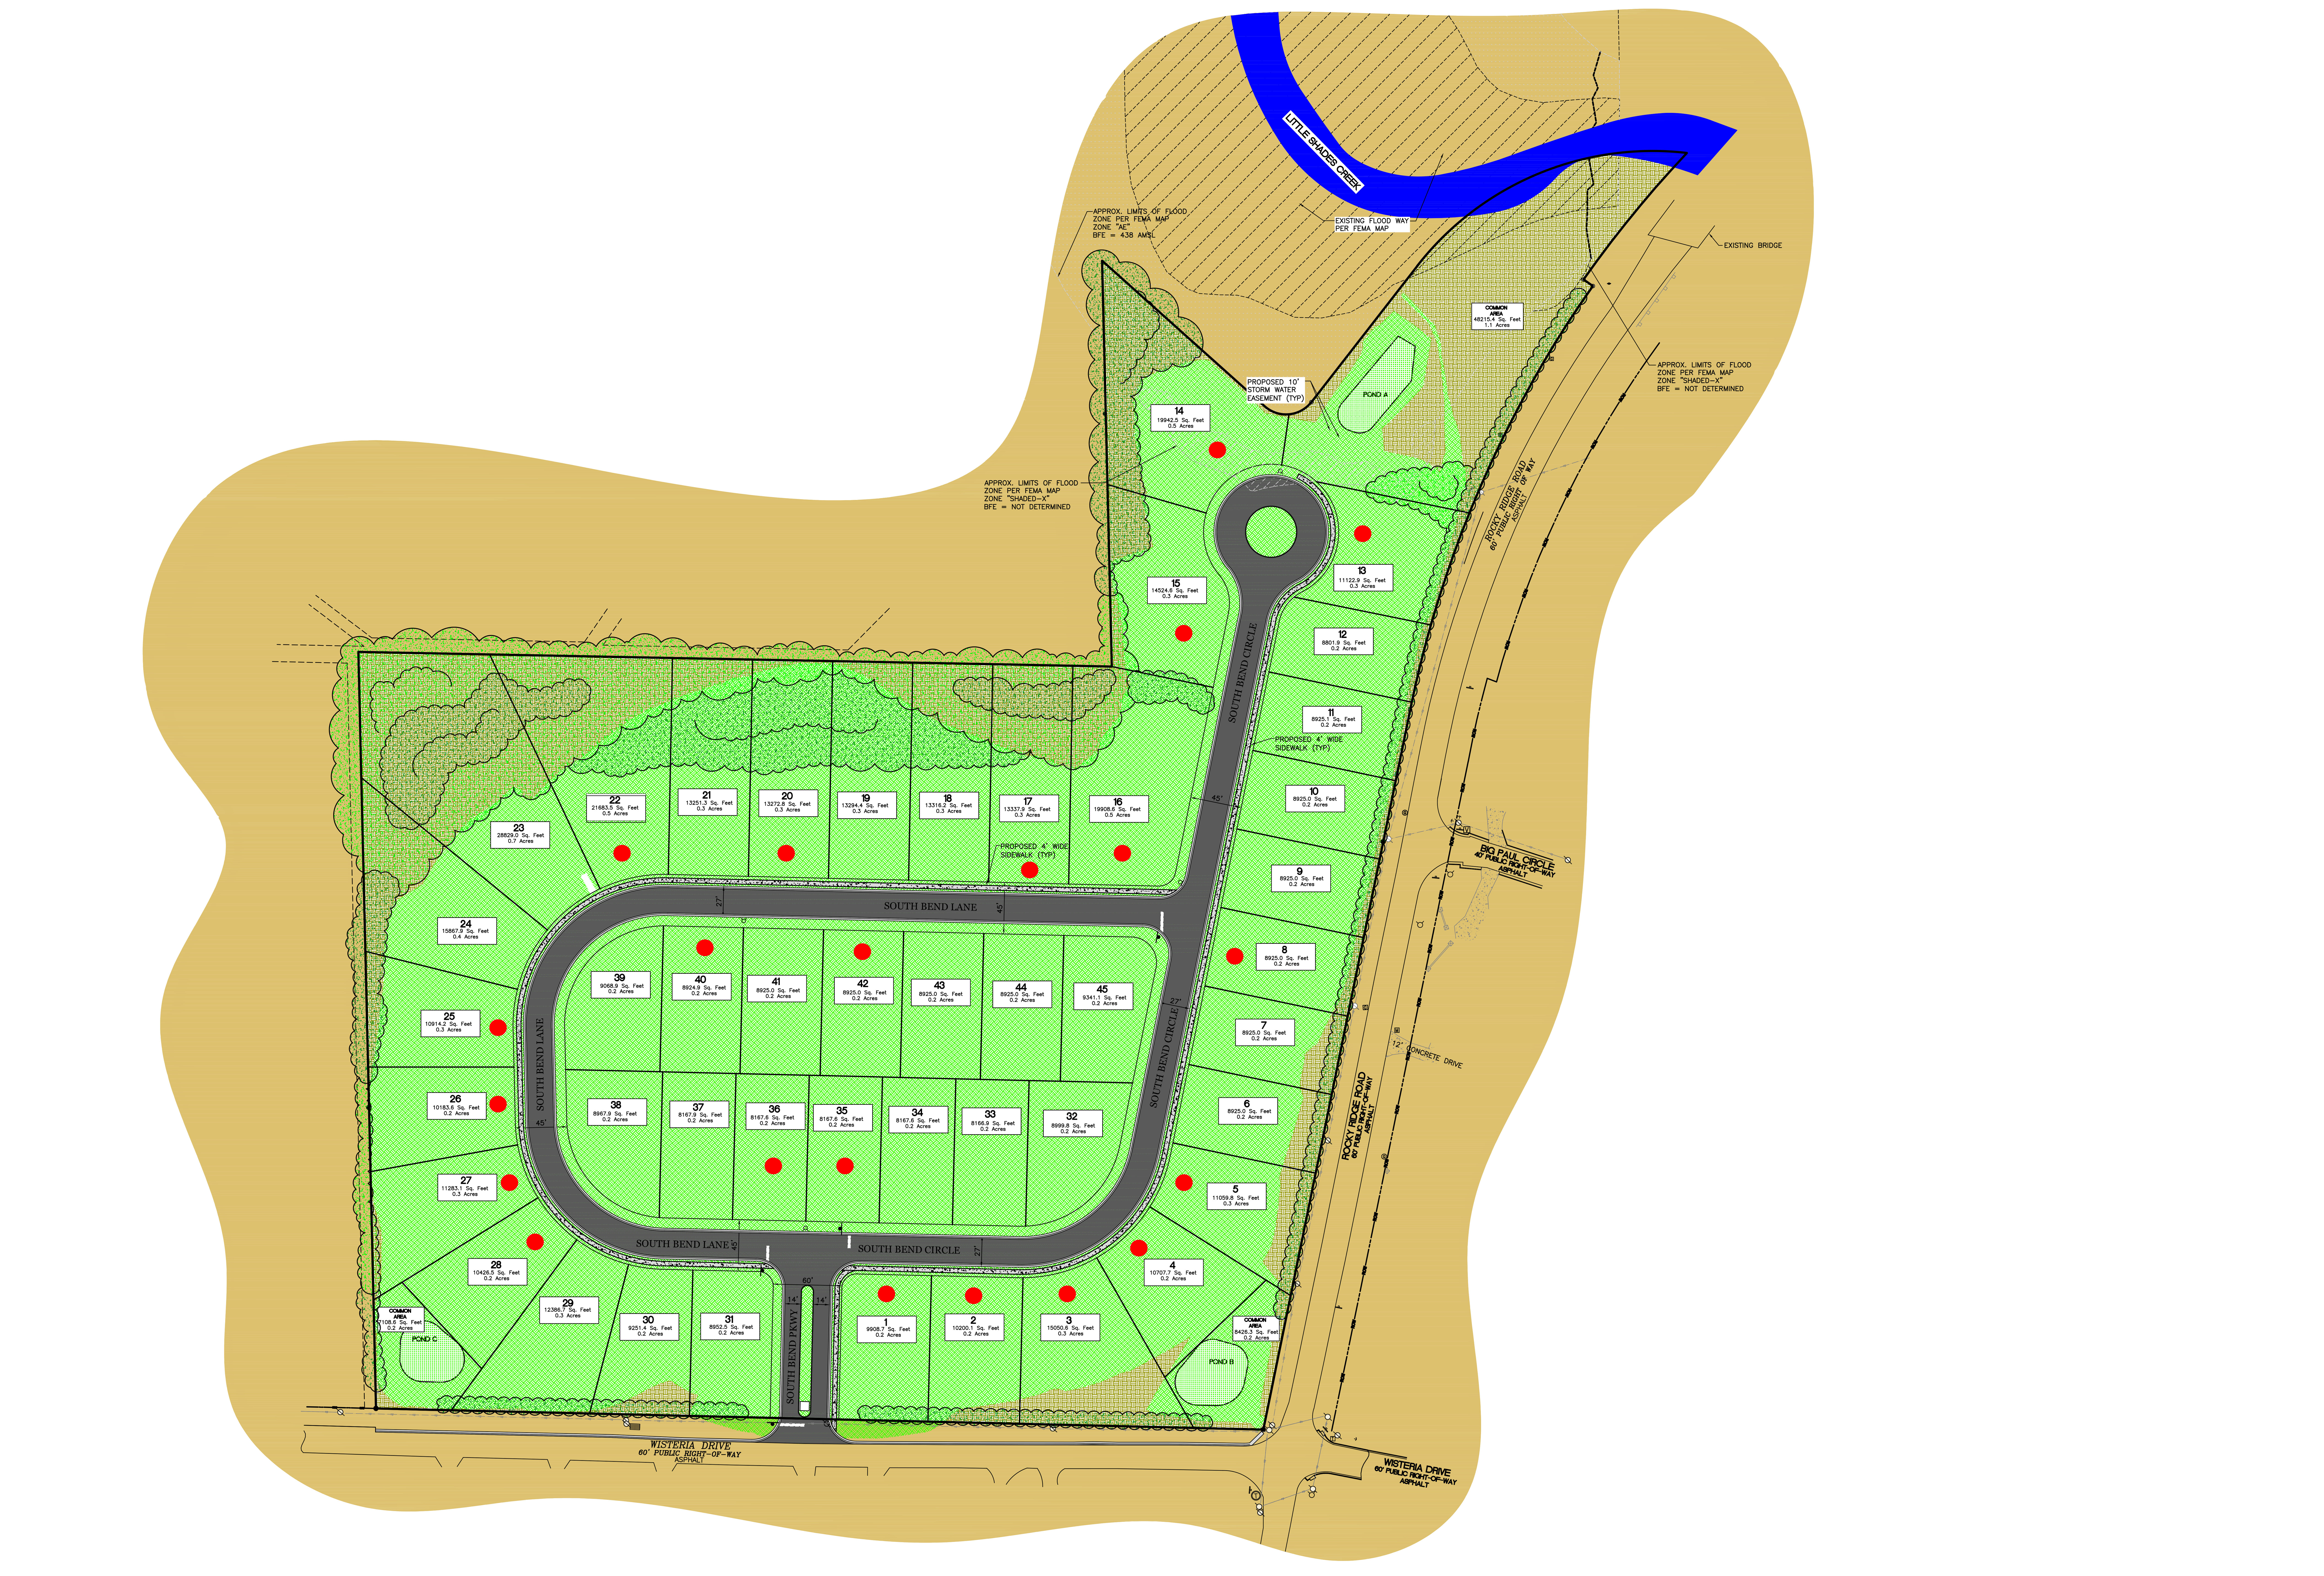 Southbend Map